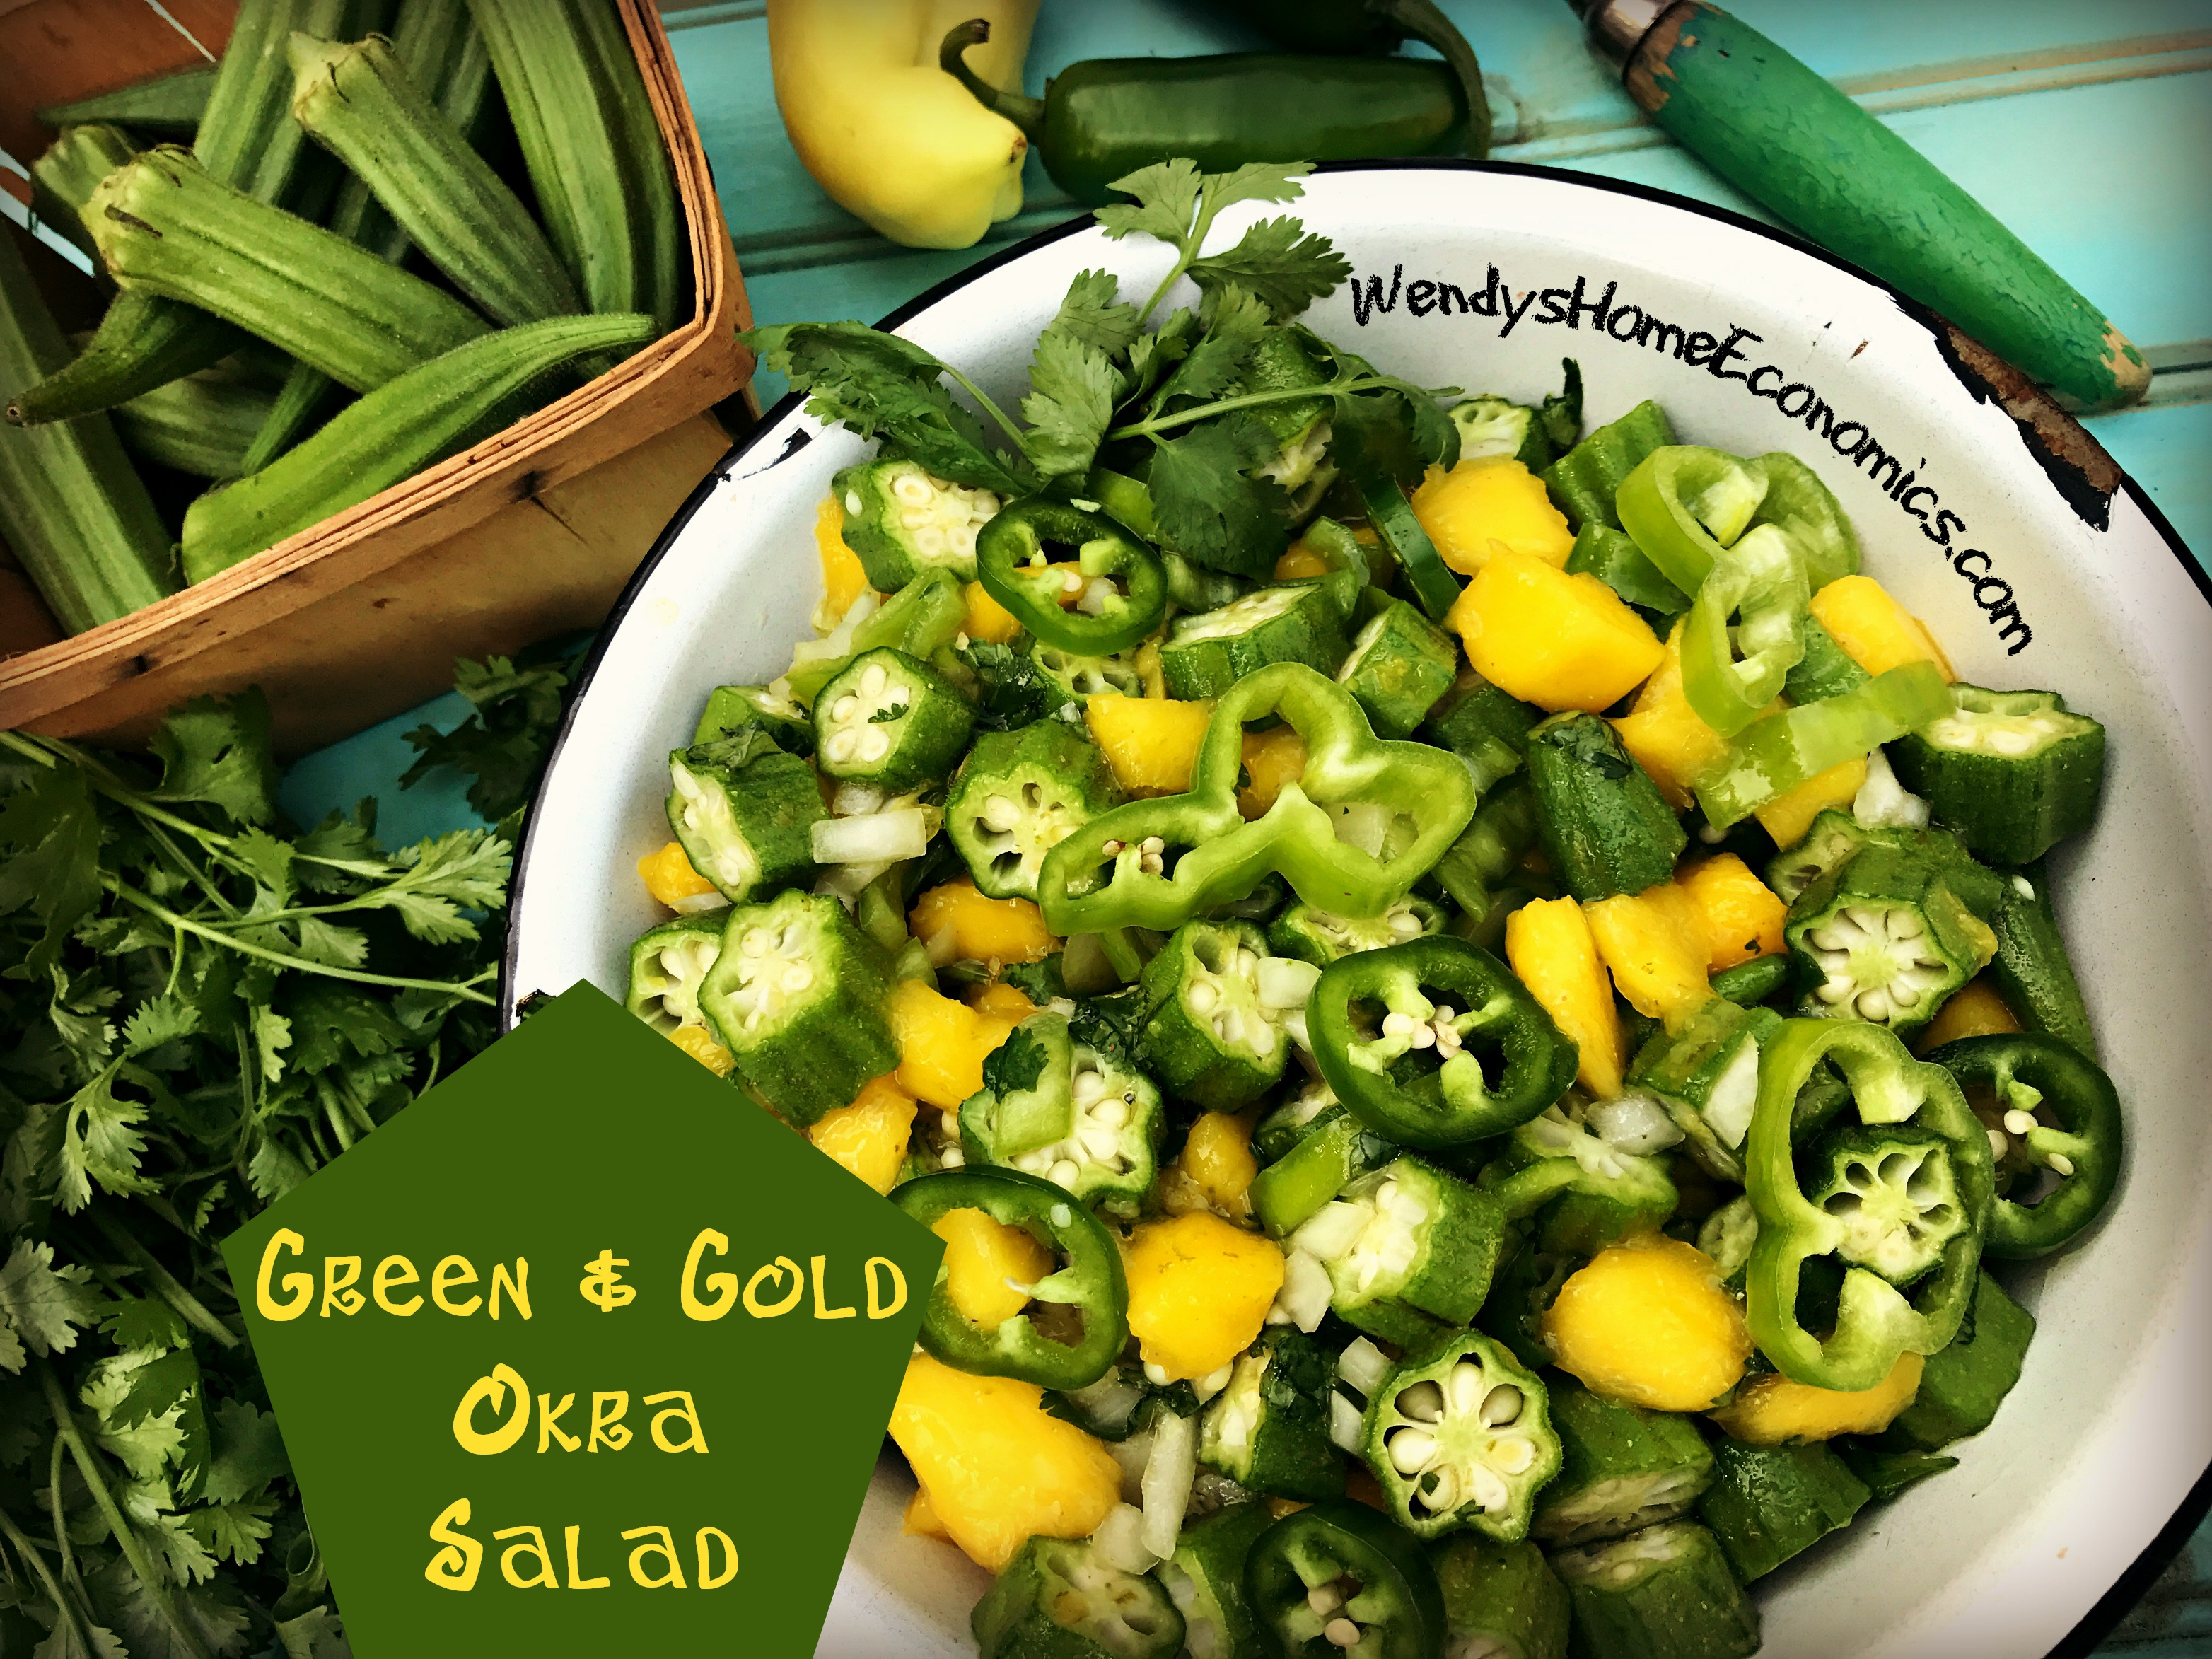 Green and Gold Okra Salad